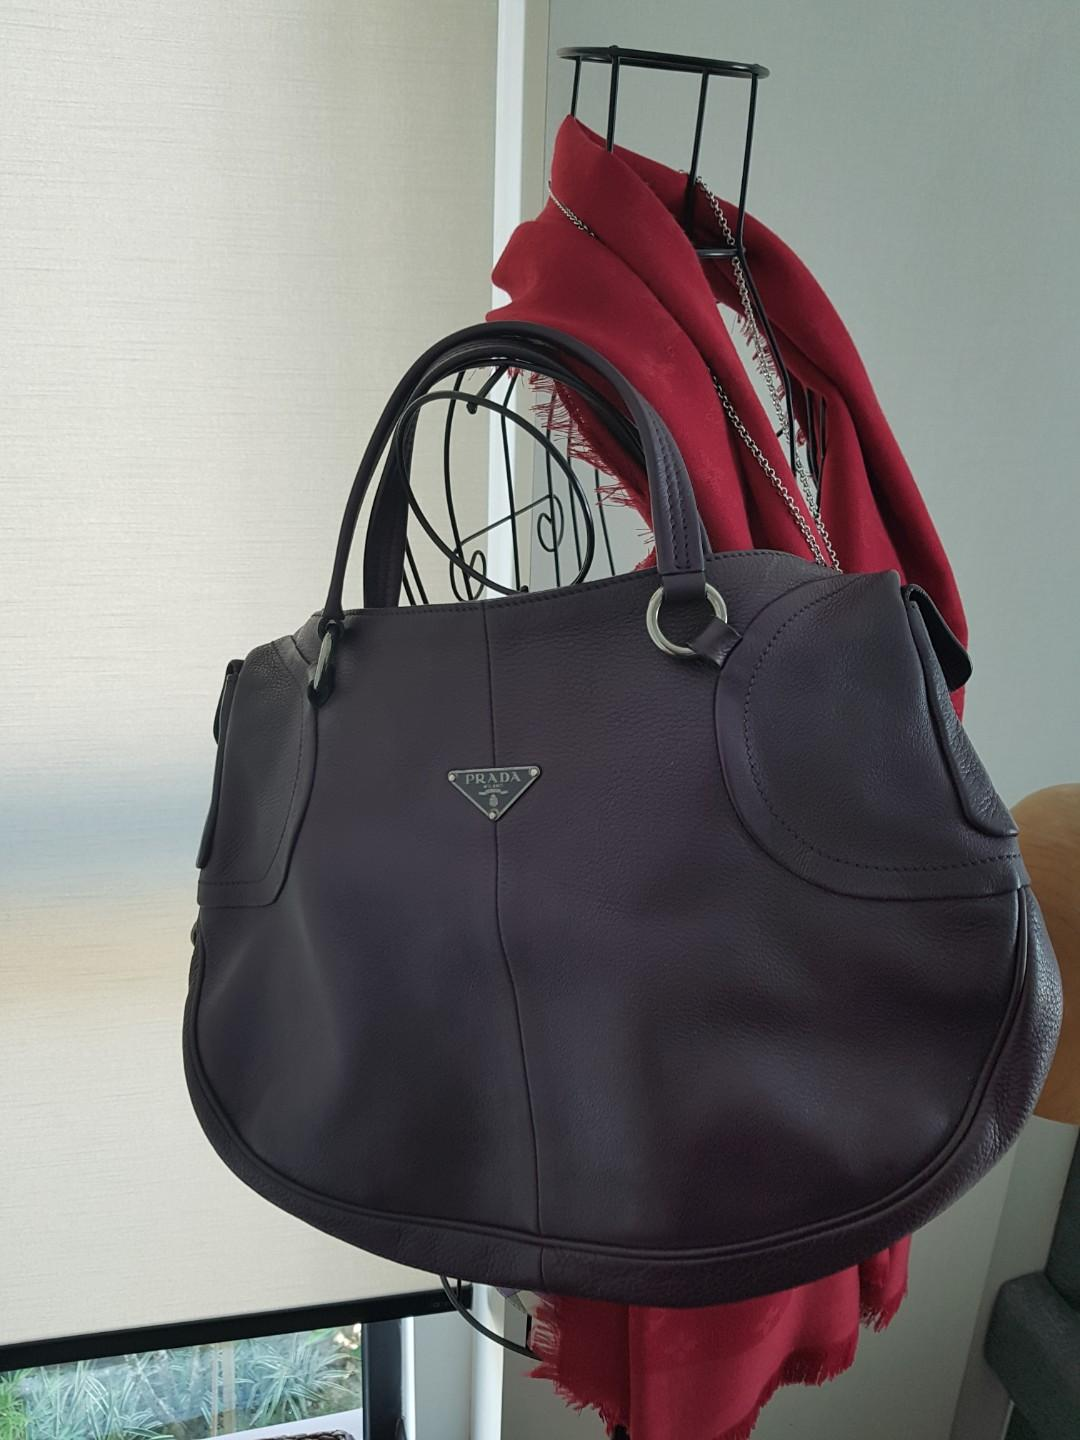 Reduced! Prada full leather purple shoulder bag